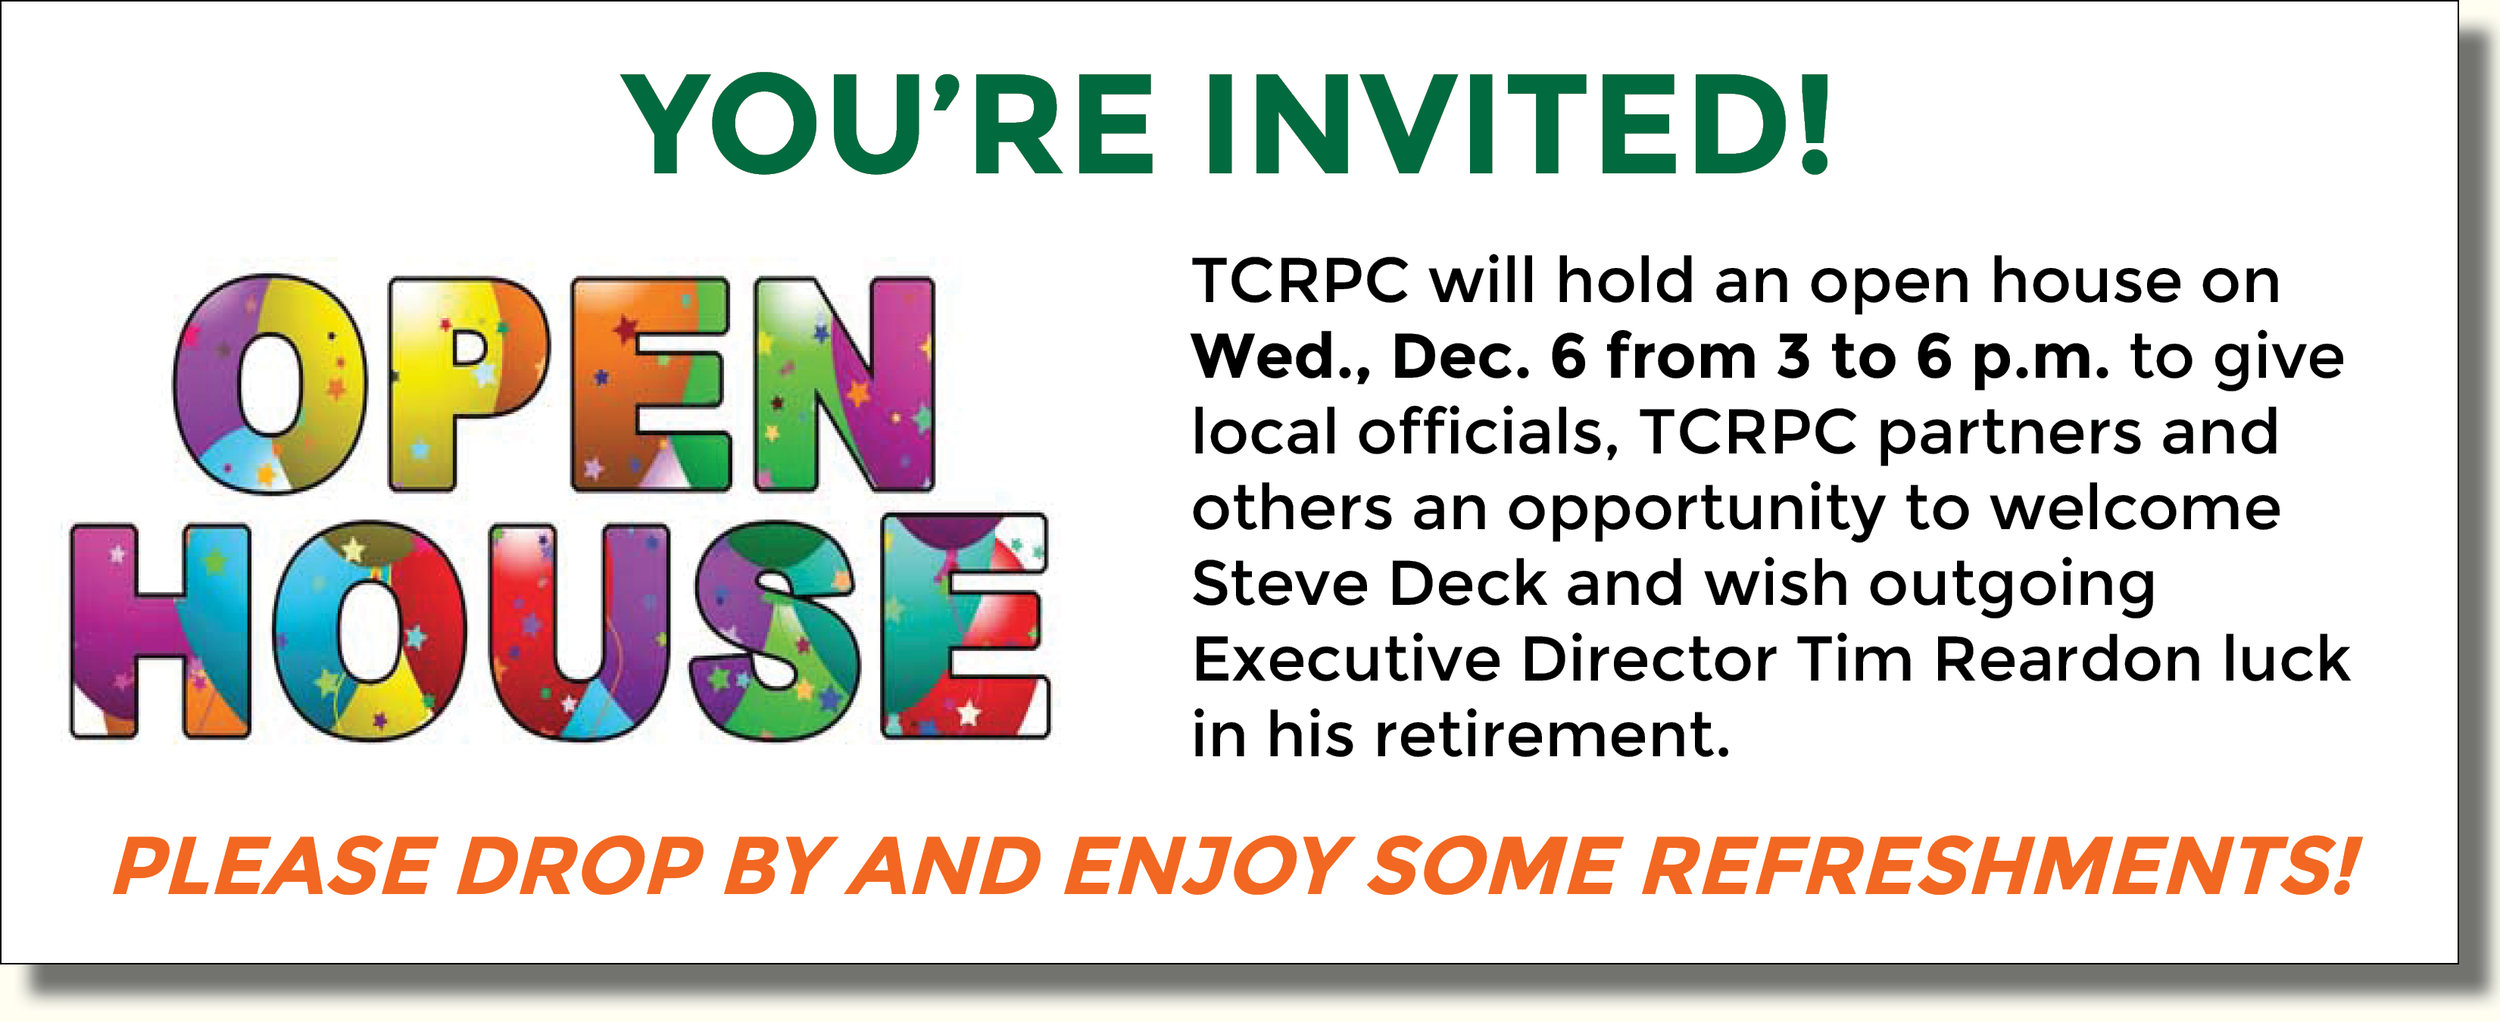 You're invited! TCRPC will hold an open house on Wed., Dec. 6 from 3 to 6 p.m. to give local officials, TCRPC partners and others an opportunity to welcome new Executive Director Steve Deck and wish Tim Reardon luck in his retirement. Refreshments will be served.